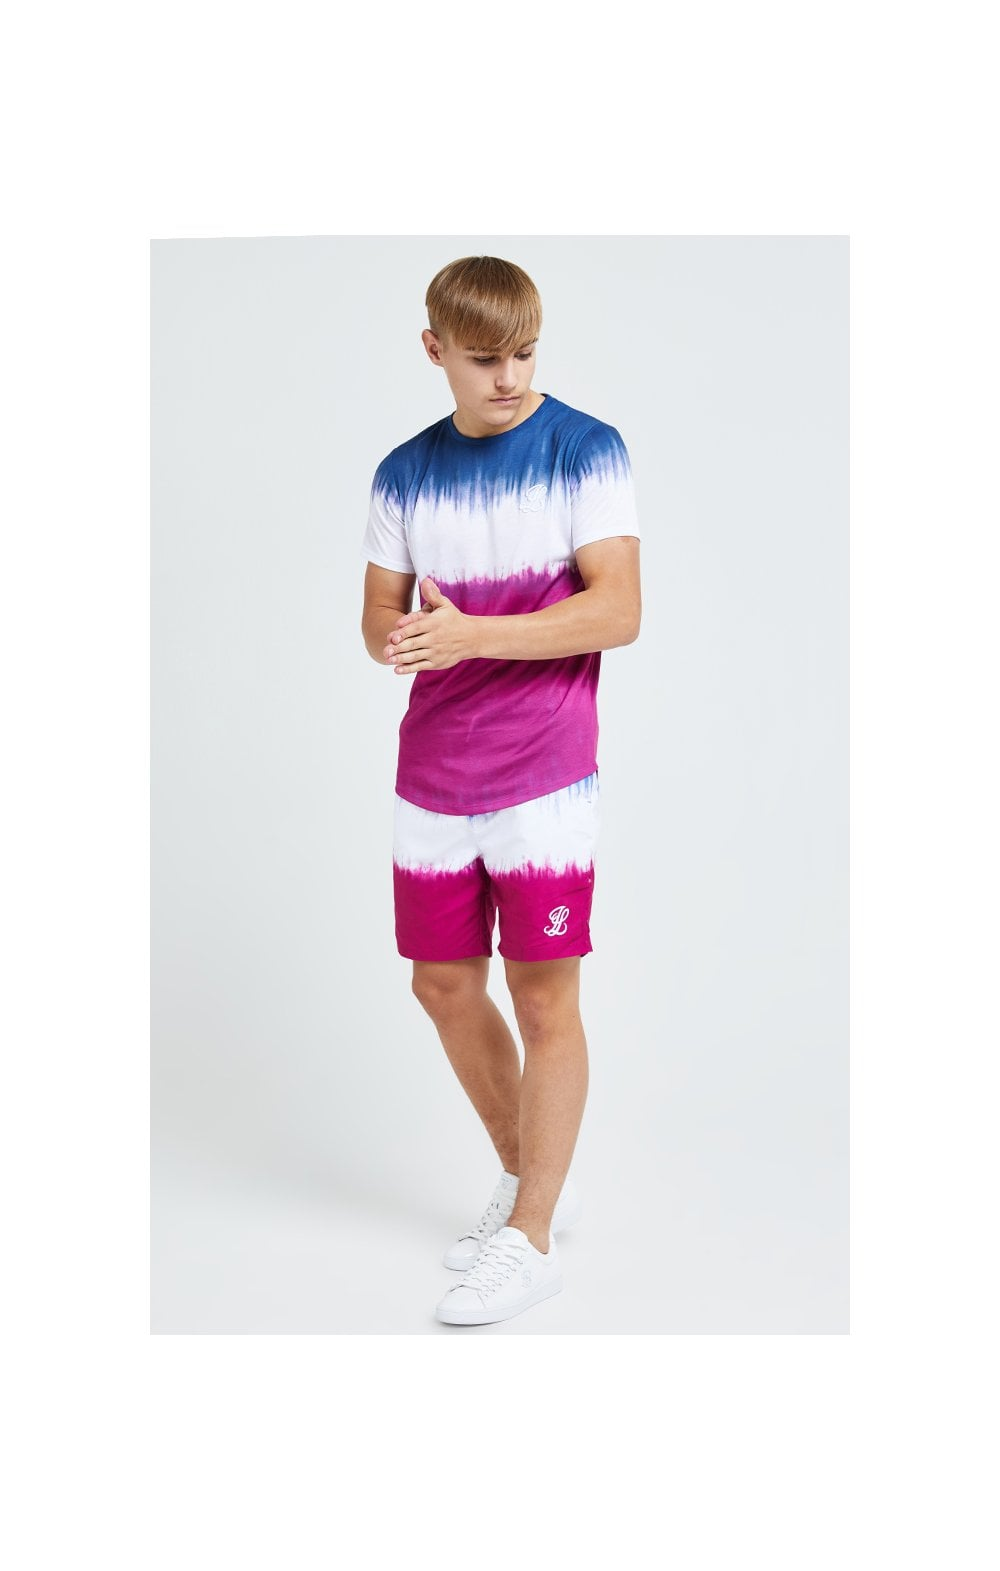 Load image into Gallery viewer, Illusive London Tie Fade Print Tee – Indigo, White & Pink (2)